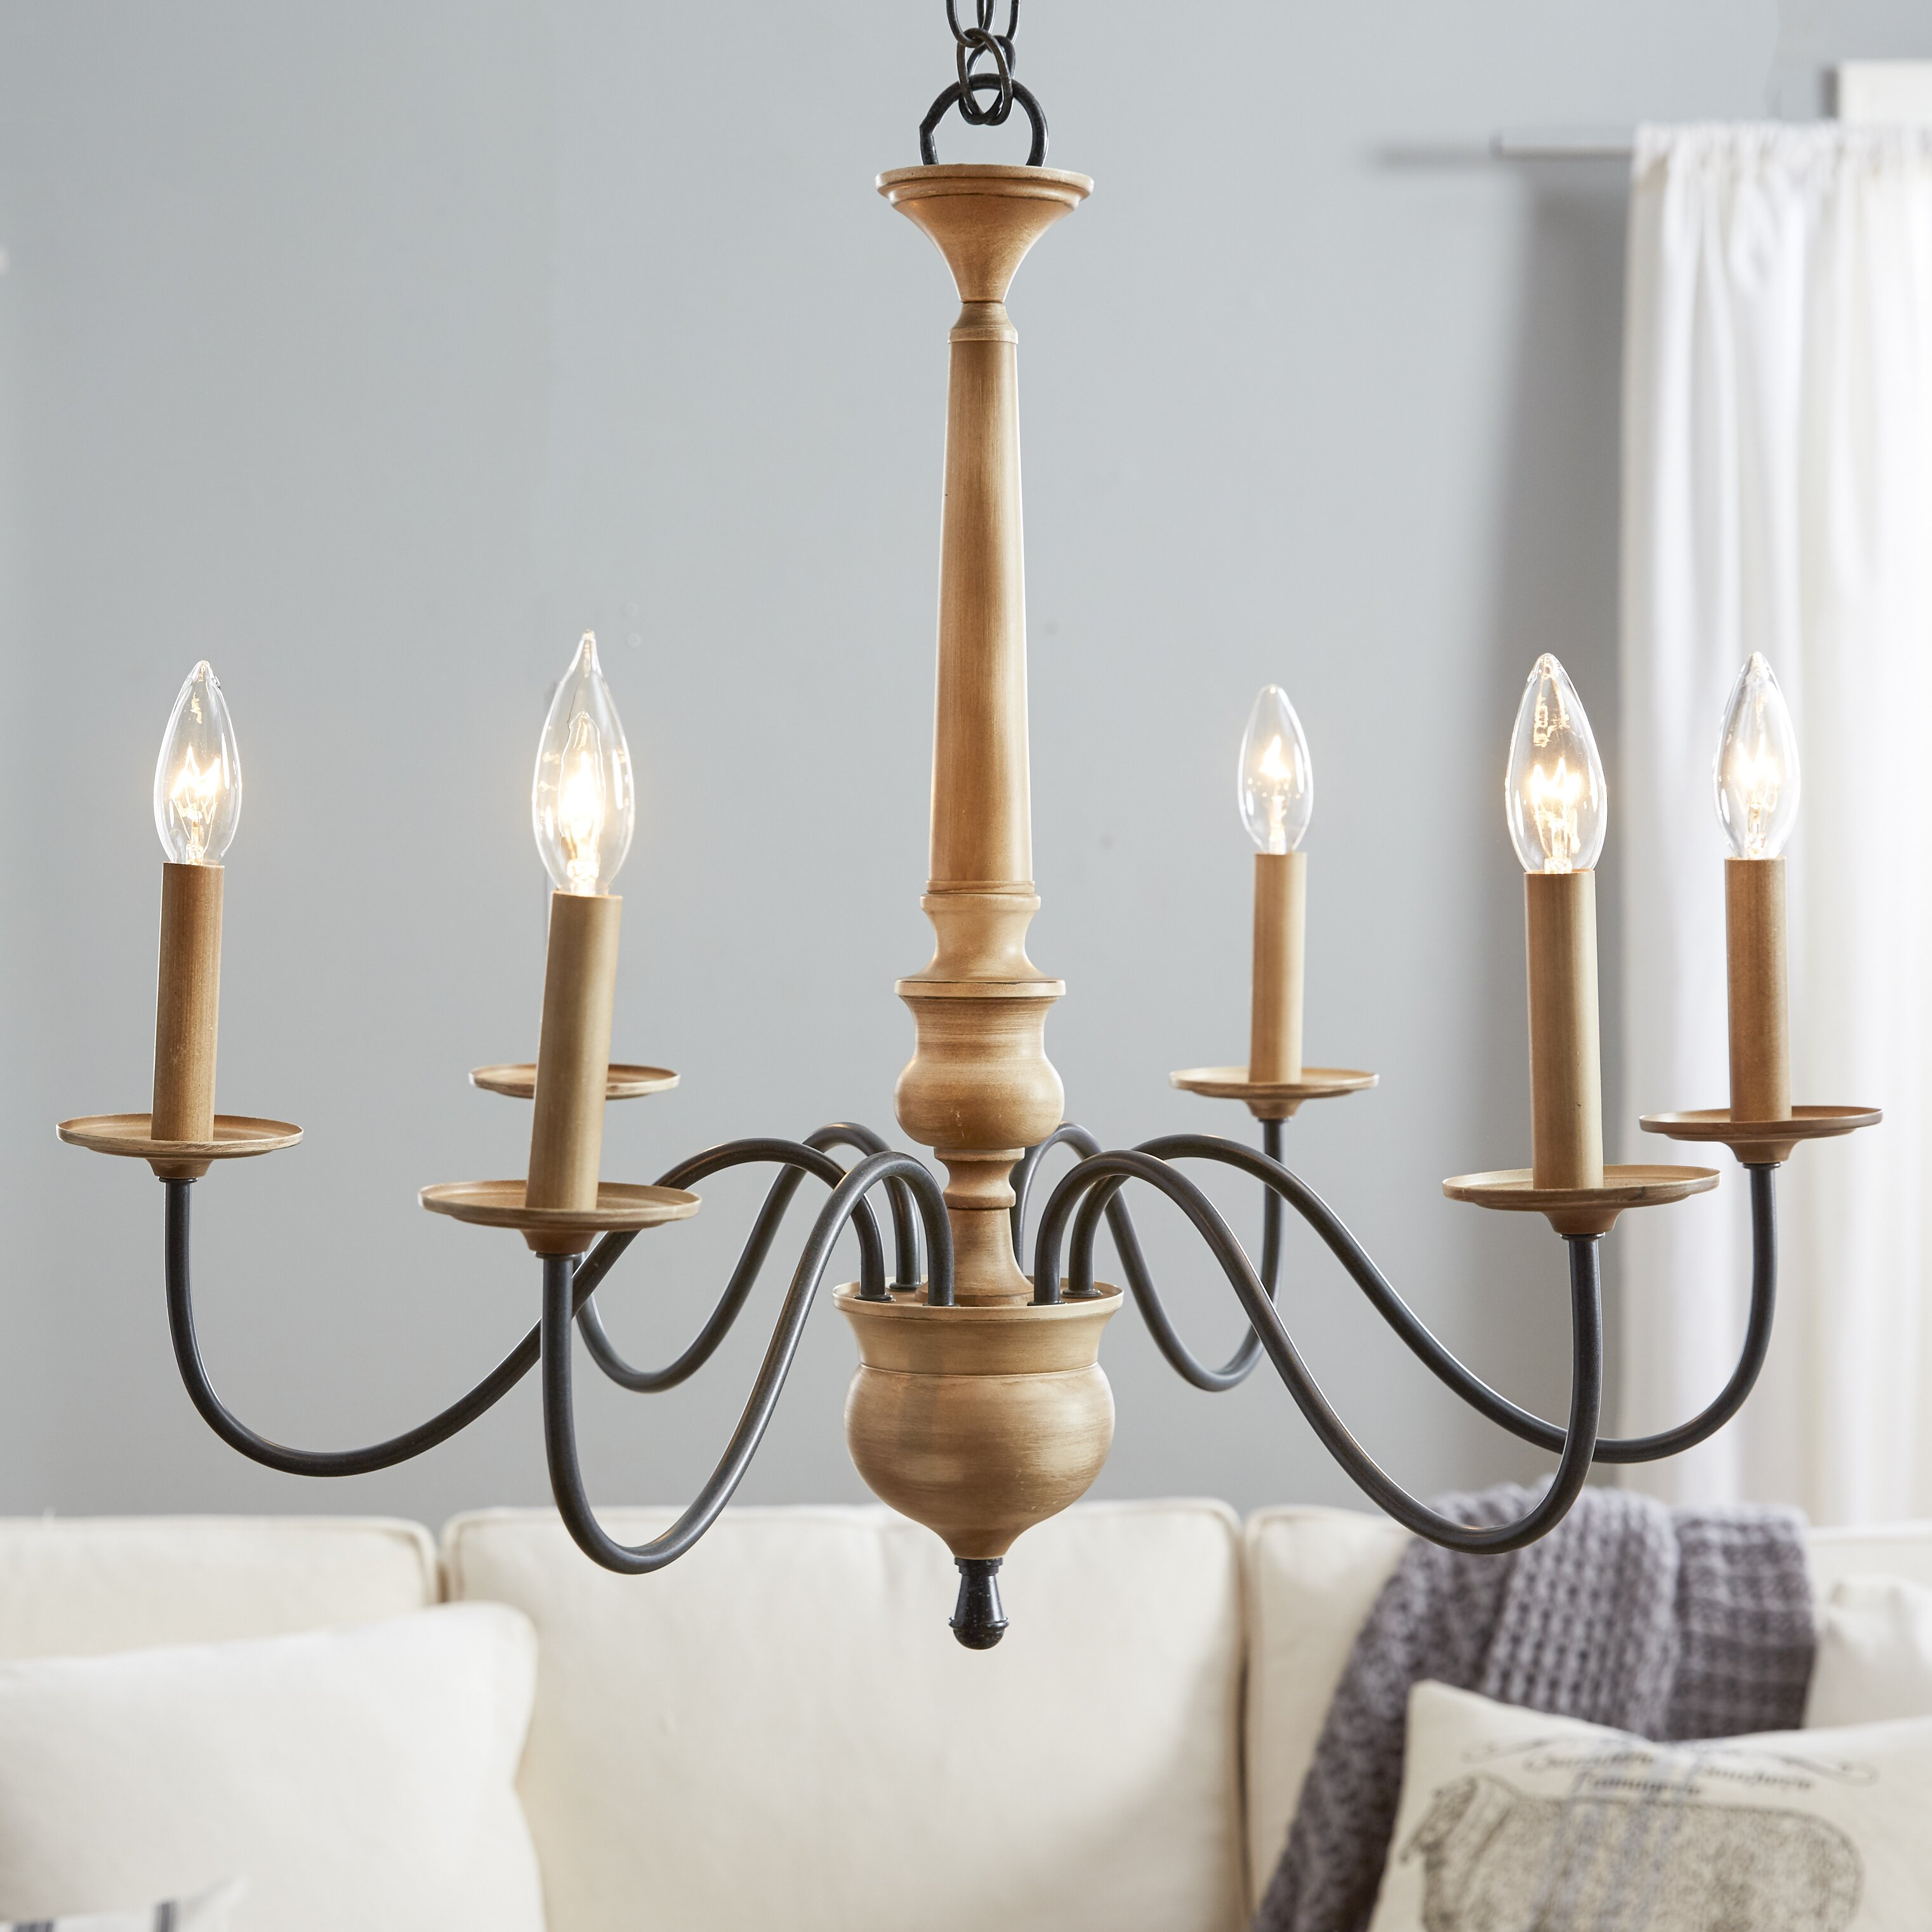 Wayfair Dining Room Lighting: Birch Lane Edson 6 Light Candle-Style Chandelier & Reviews